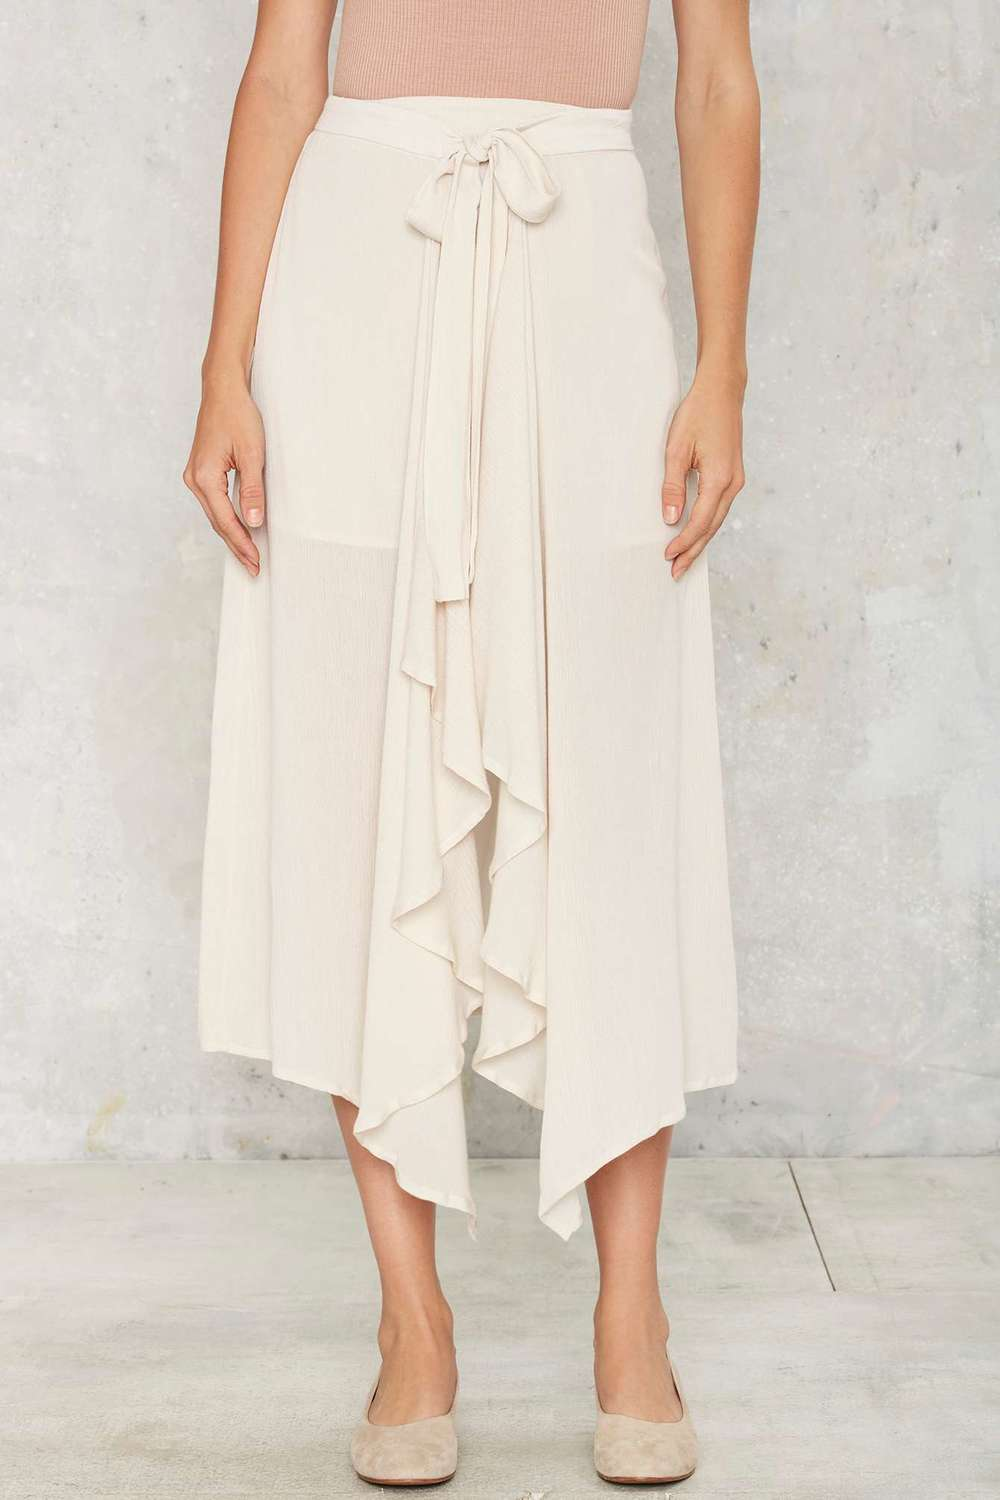 Nasty Gal Wrapped in Excellence Skirt